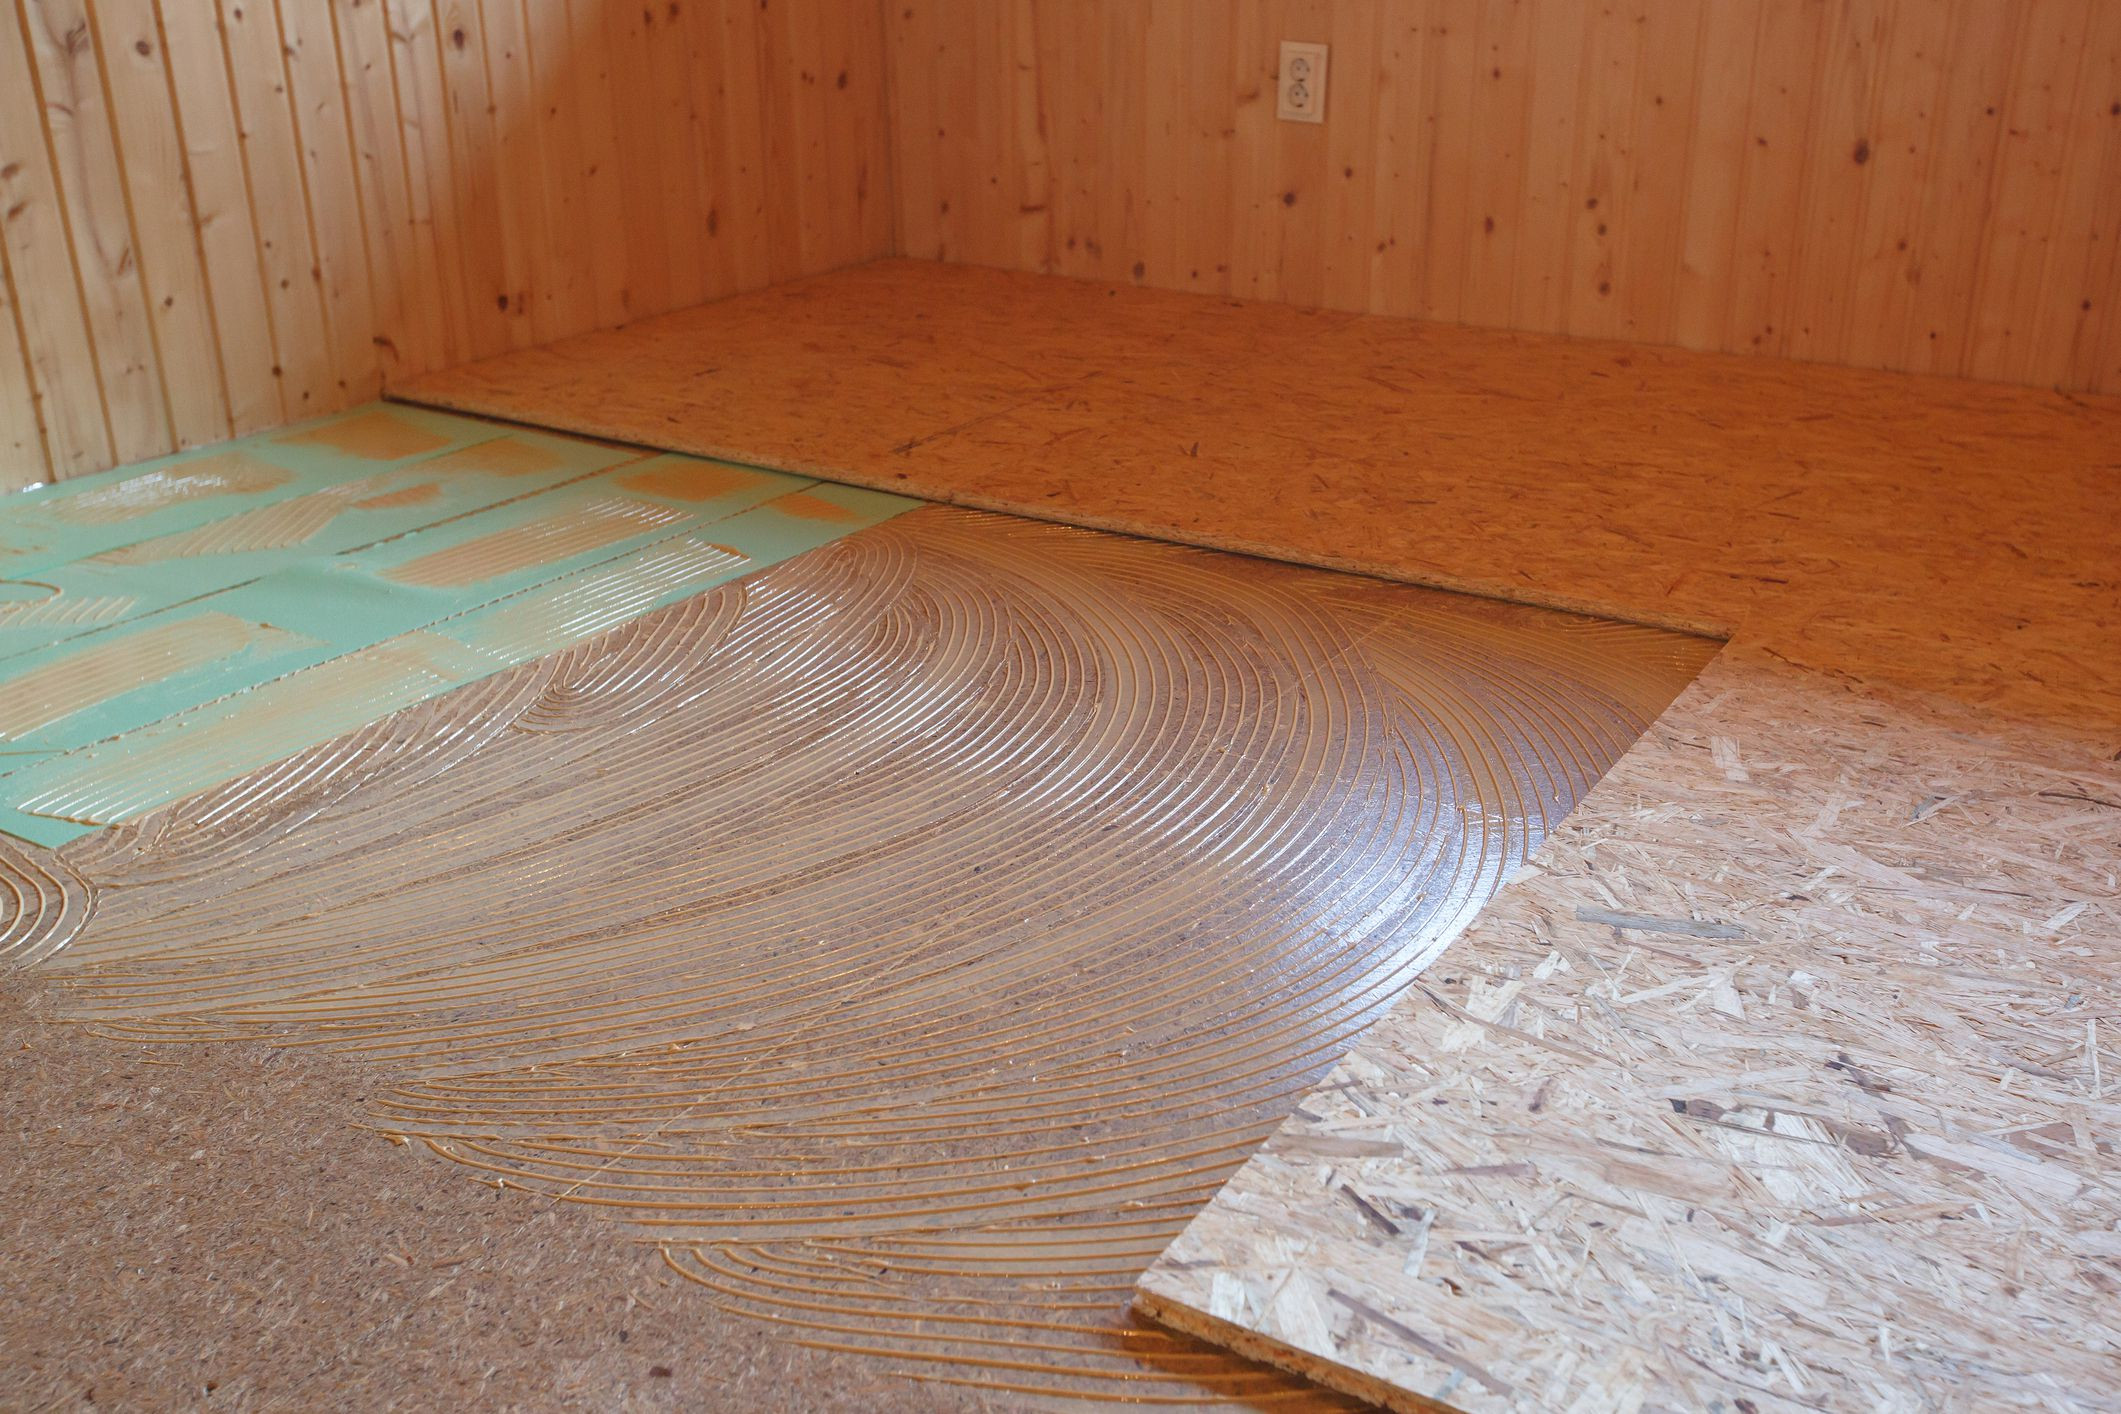 how to put down hardwood floors video of types of subfloor materials in construction projects inside gettyimages 892047030 5af5f46fc064710036eebd22